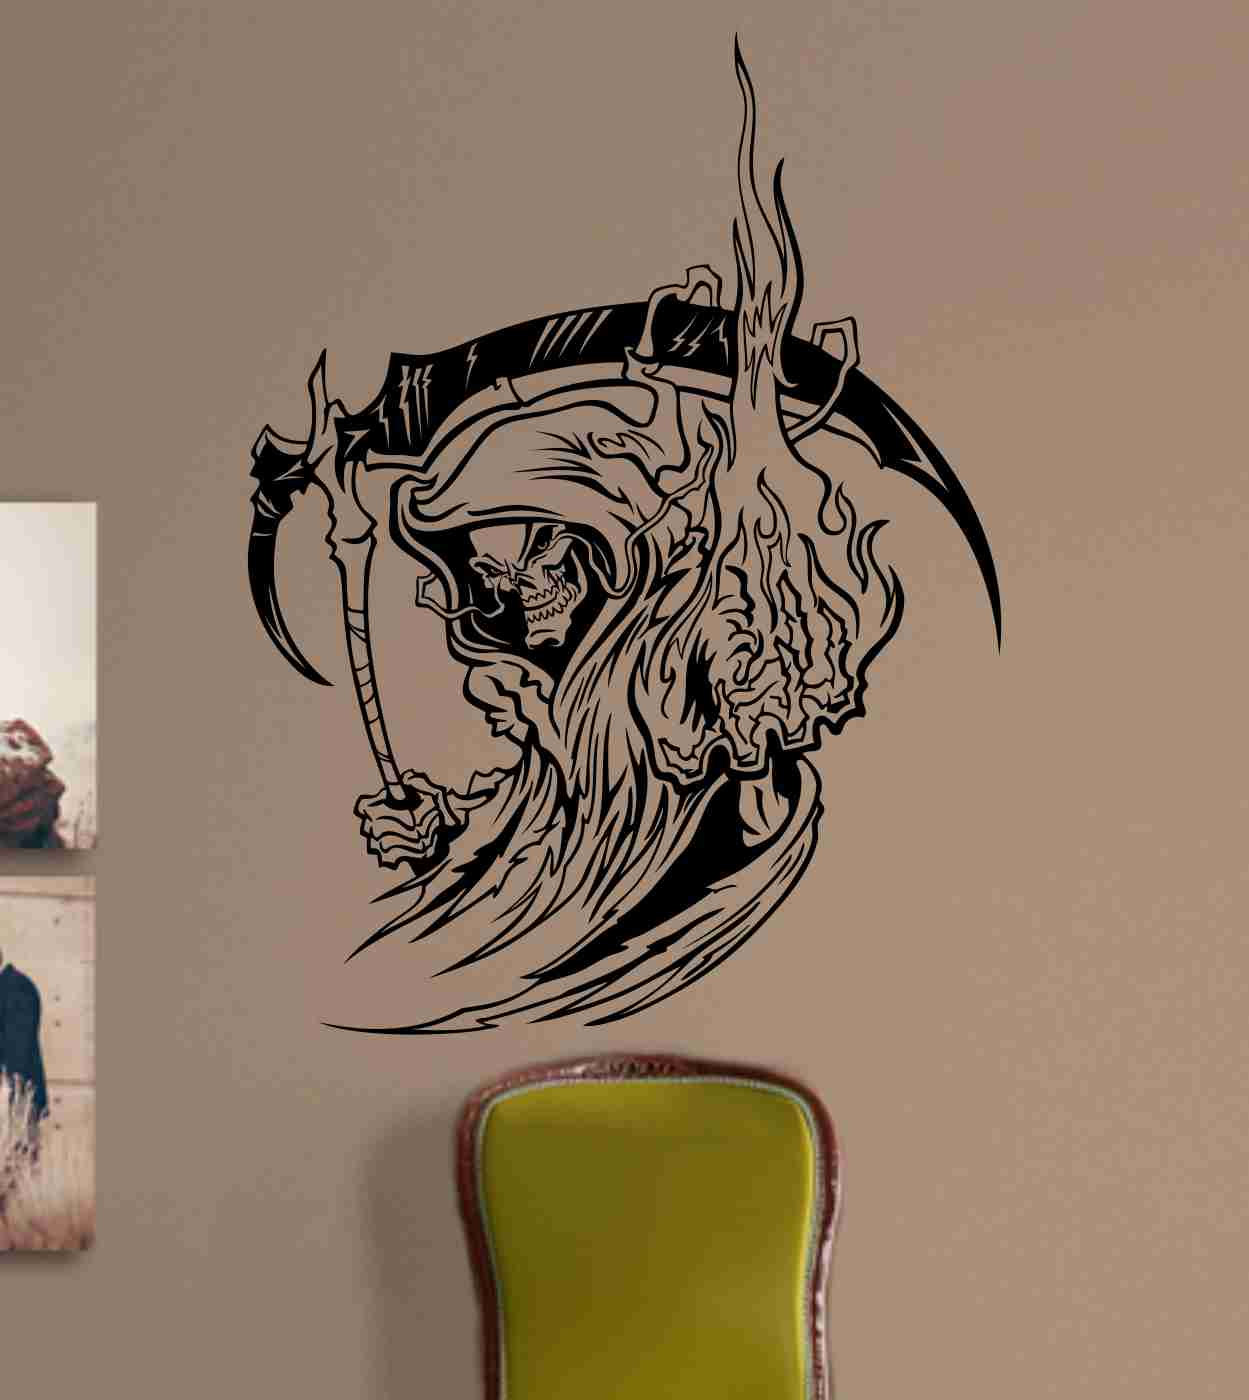 Skull Version 127 Bones Grim Reaper Wall Vinyl Decal Sticker Art Graphic Sticker Skulls